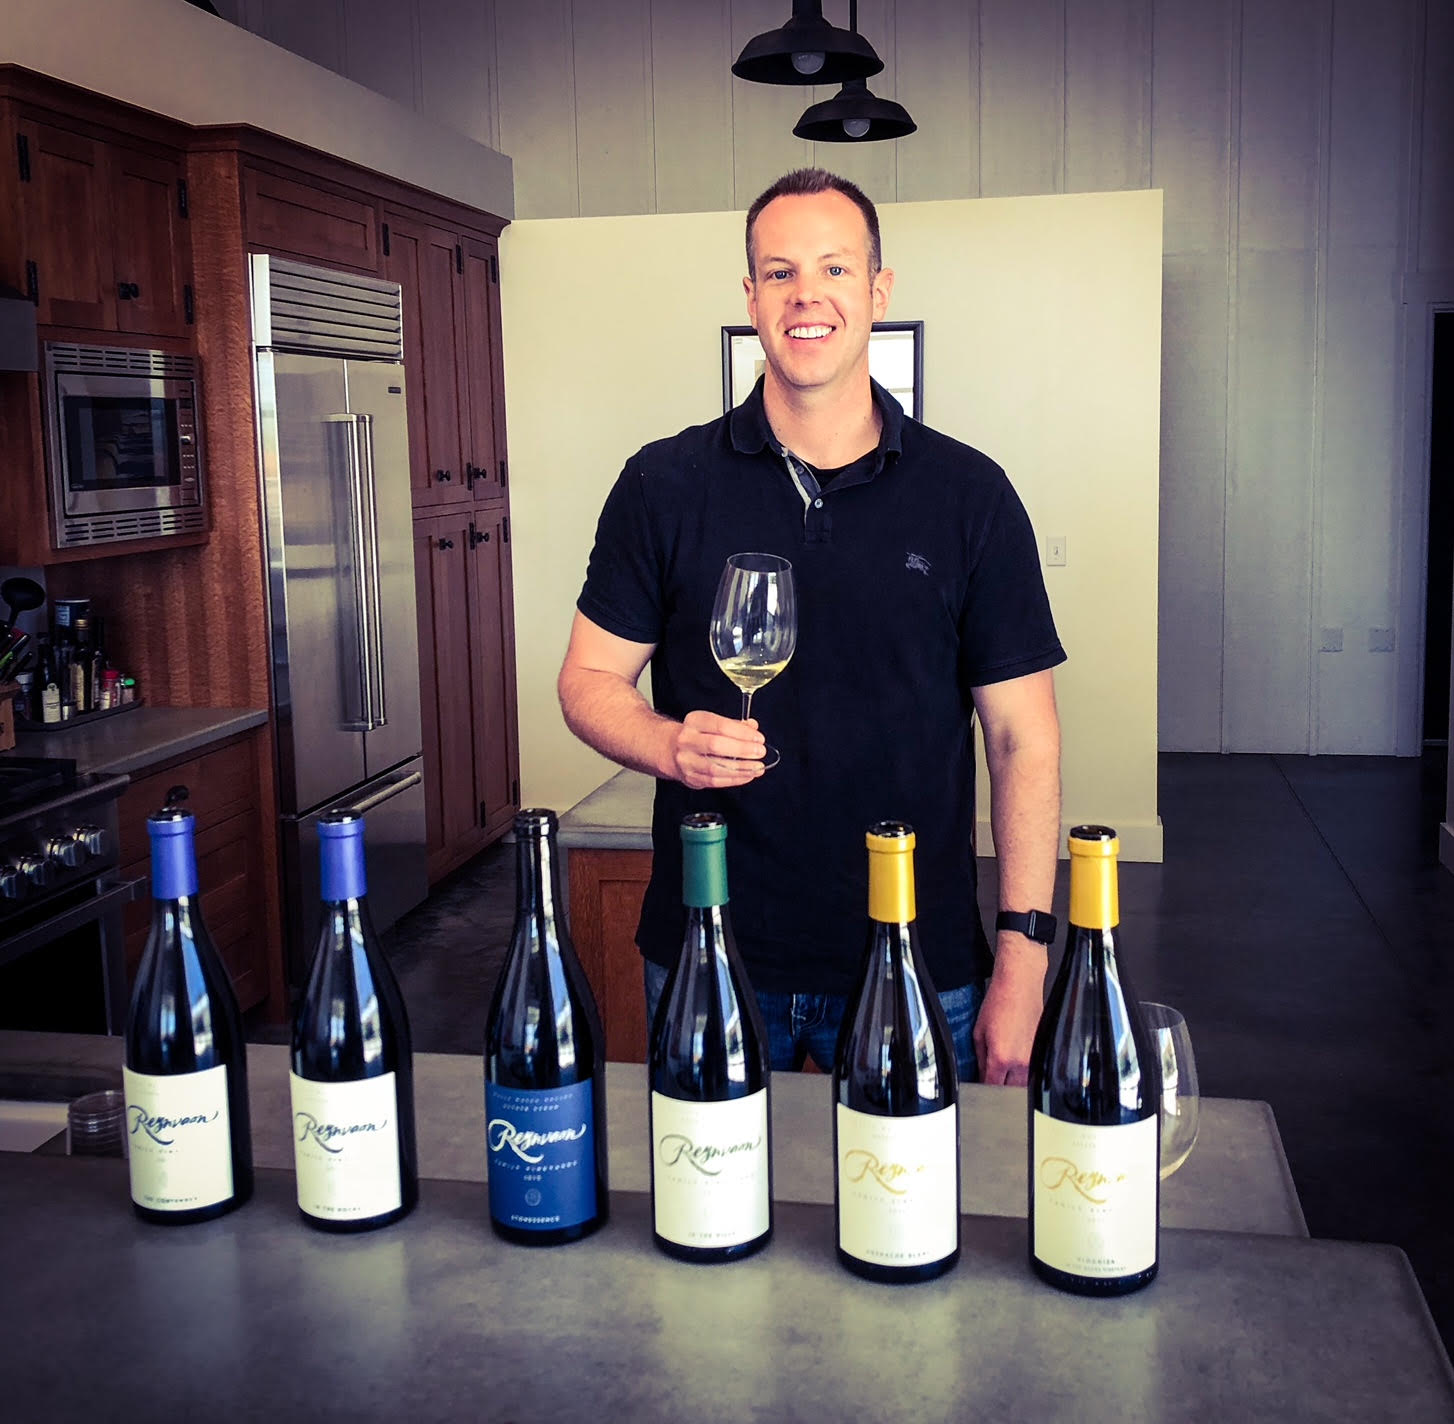 It was a great day tasting the gorgeous new wines at Reynvaan Family Vineyards.